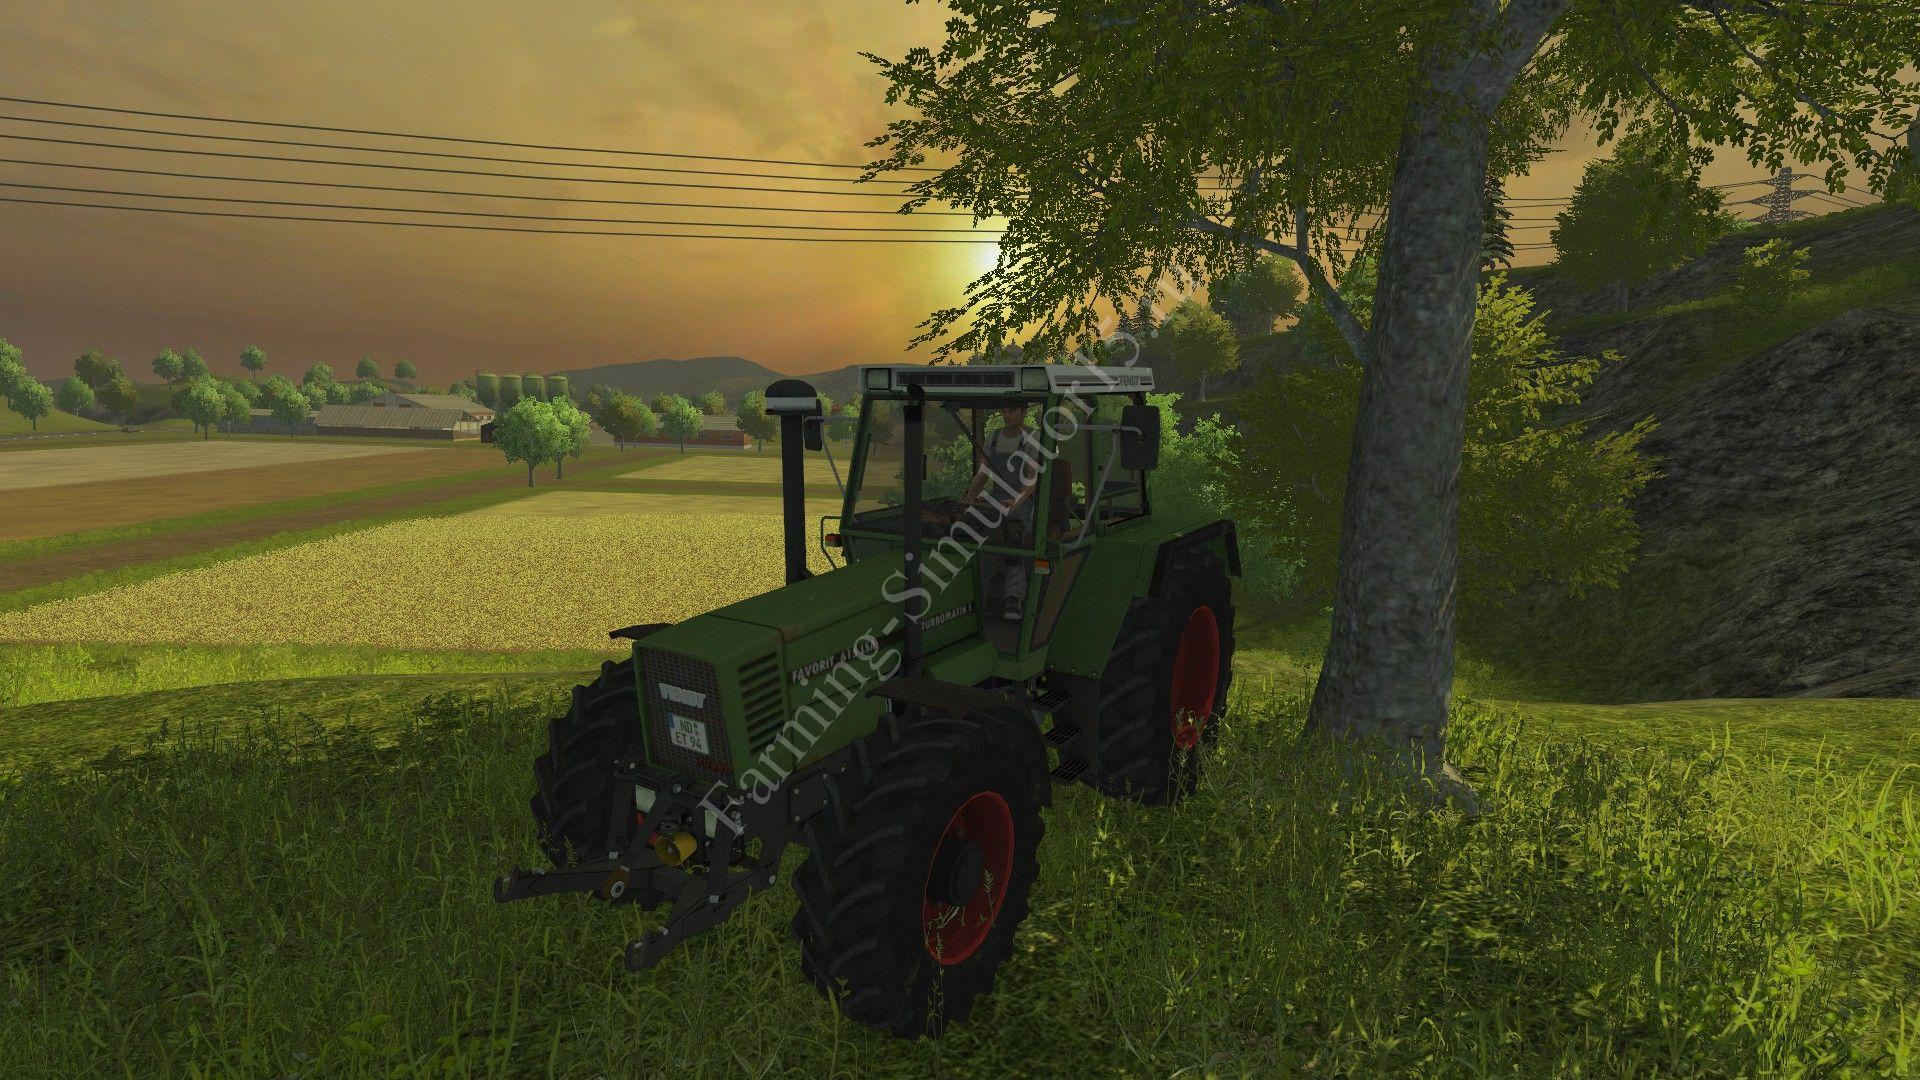 Мод трактора Fendt Favorit 615 LSA Turbomatik v 3.0 Farming Simulator 2013, Farming Simulator 13